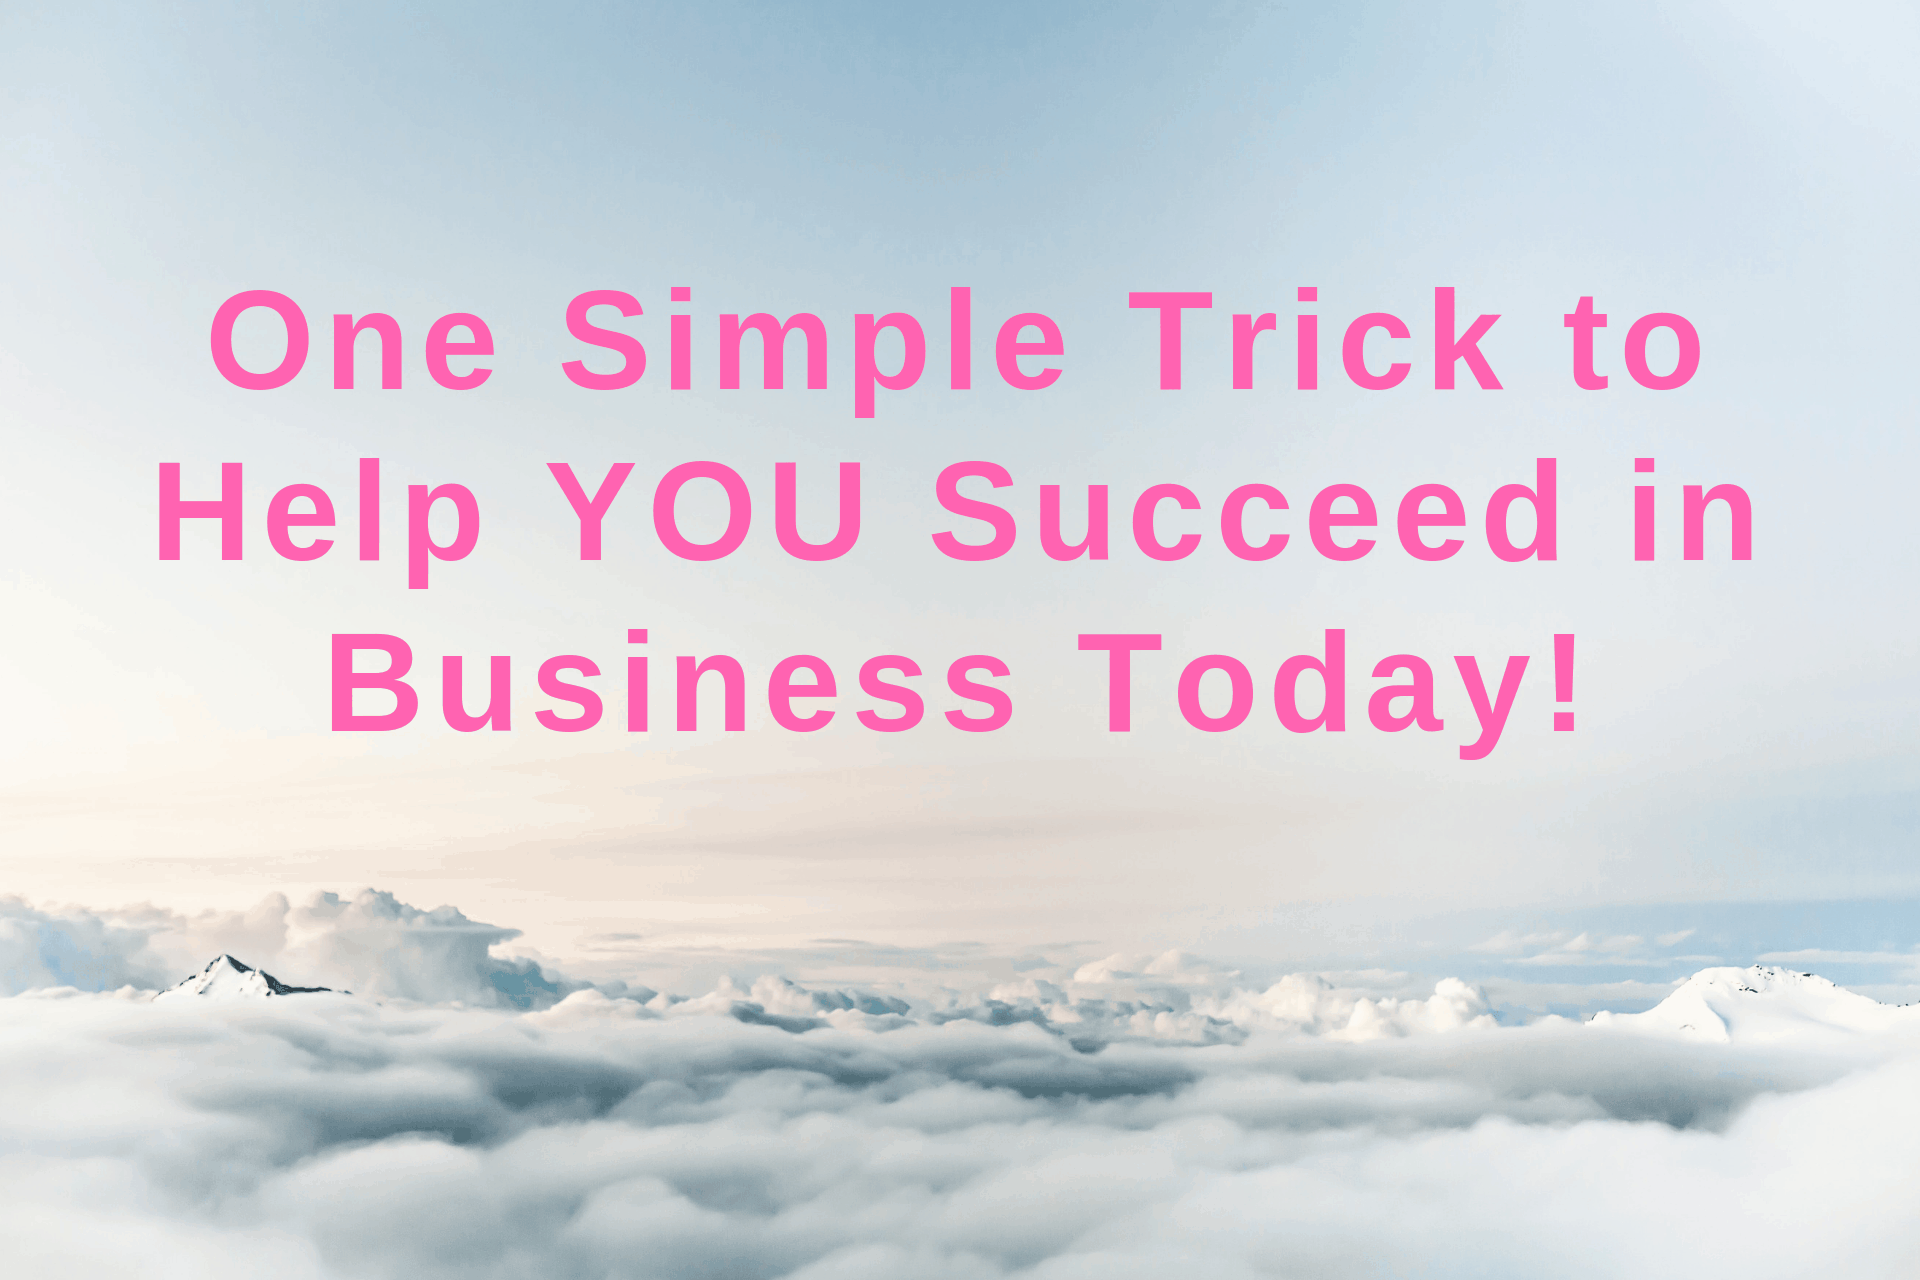 One Simple Trick to Help YOU Succeed in Business Today! - Intuitive